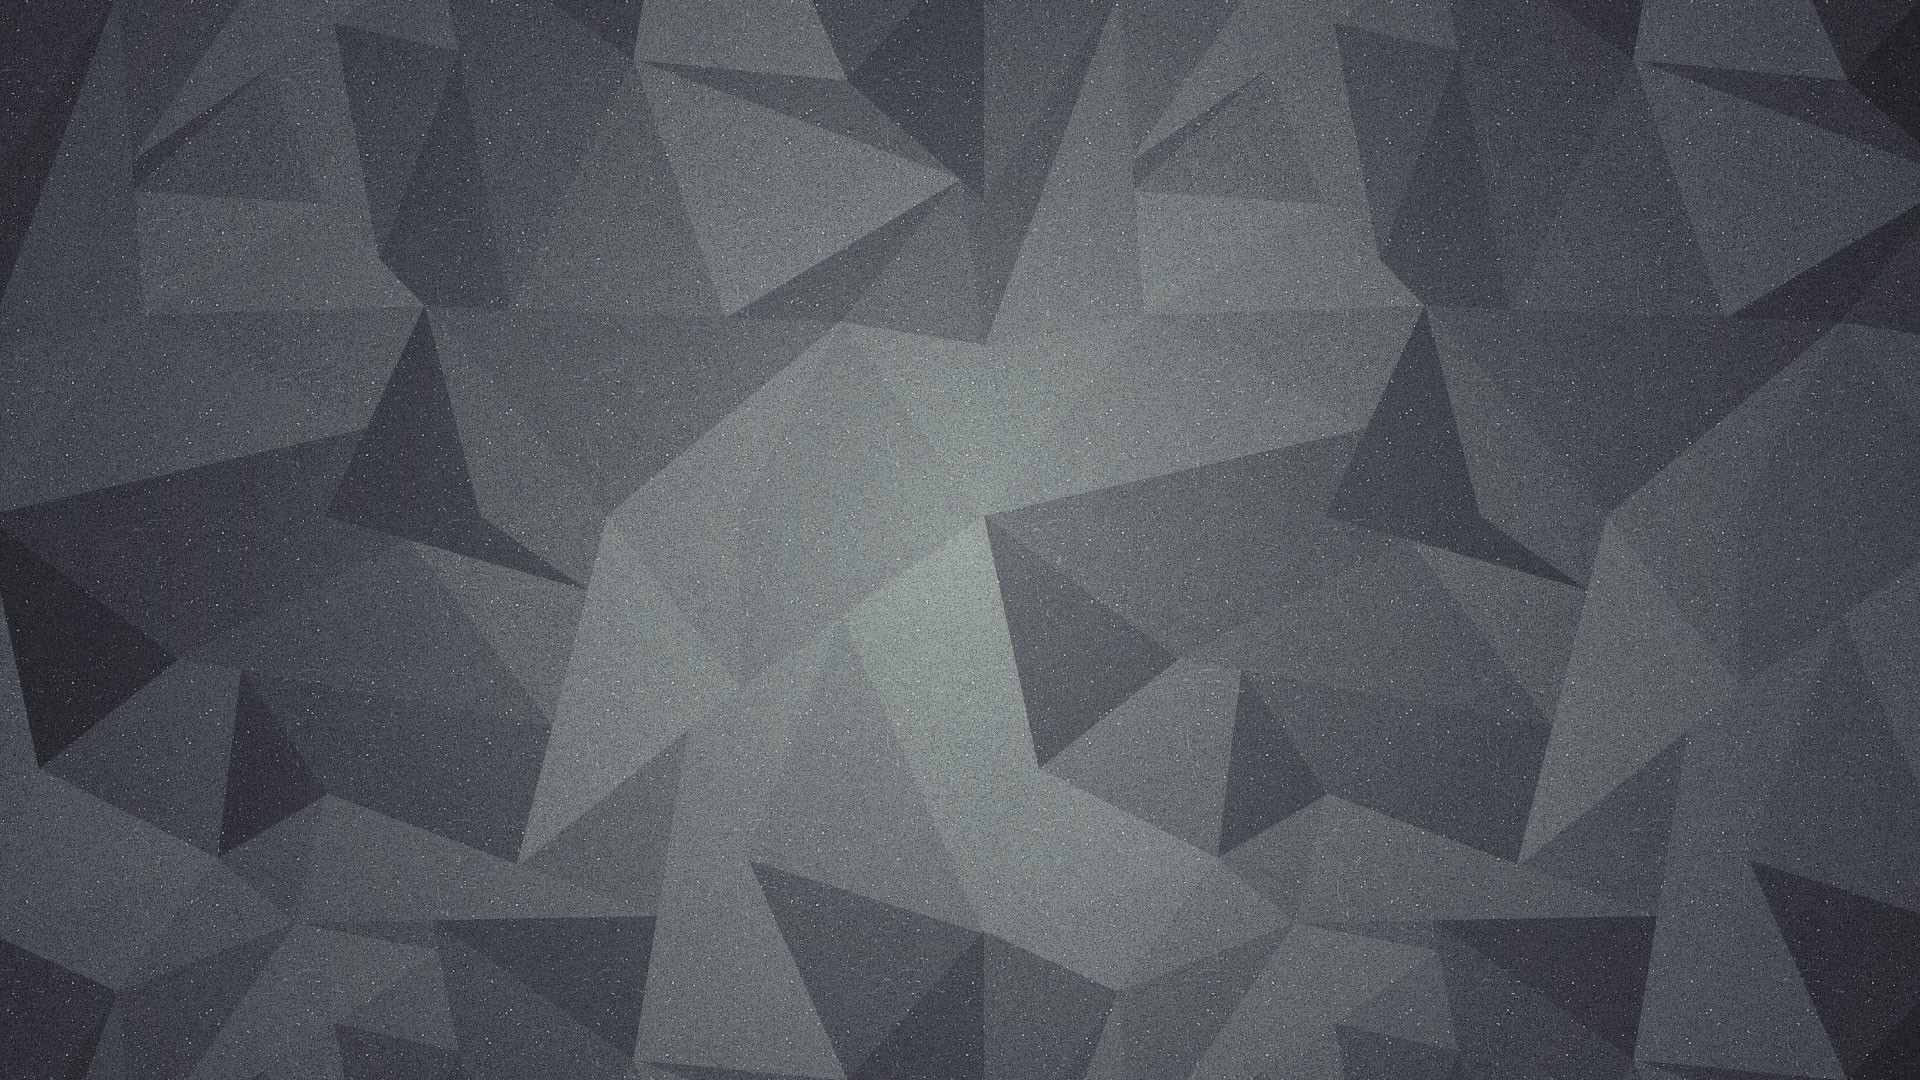 Black and white wallpapers grey abstract wallpaper html code - Grey Hd Wallpapers Wallpapersafari